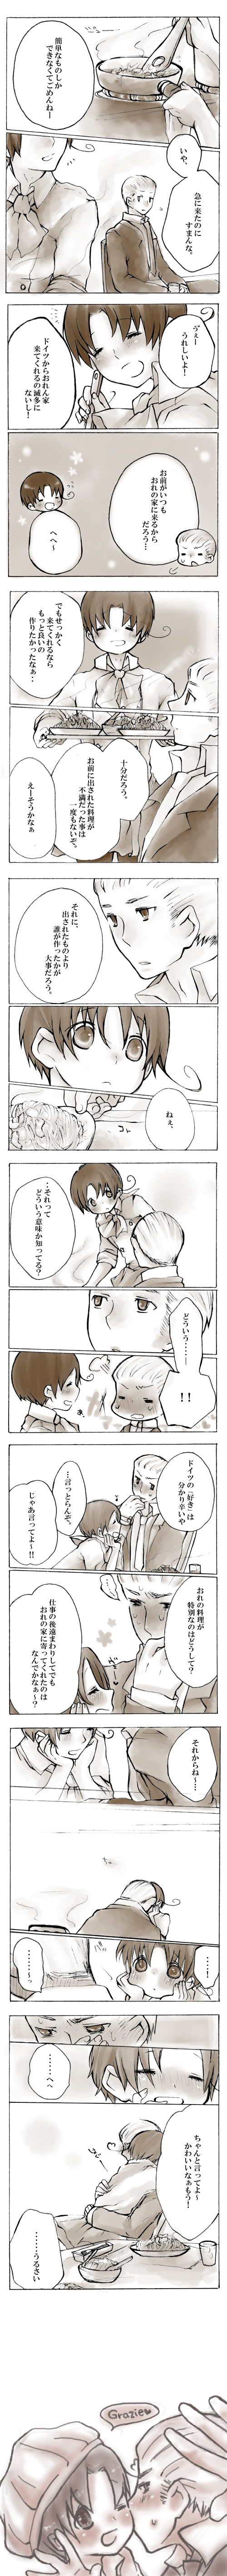 Tags: Anime, Pixiv Id 990047, Axis Powers: Hetalia, Germany, North Italy, Comic, Mediterranean Countries, Axis Power Countries